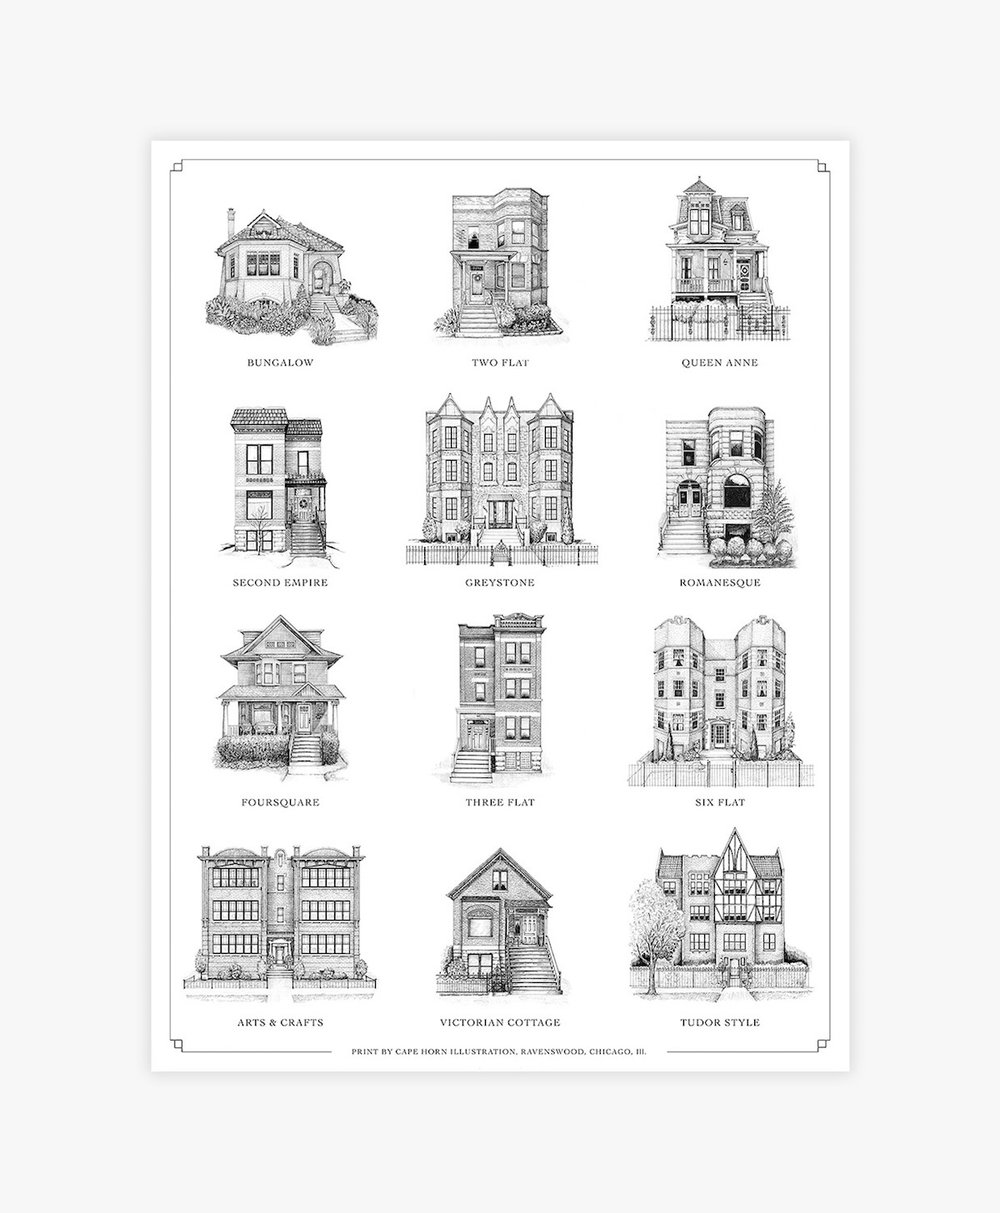 Cape Horn Illustration | A Guide to Chicago Home Styles | 18x24""